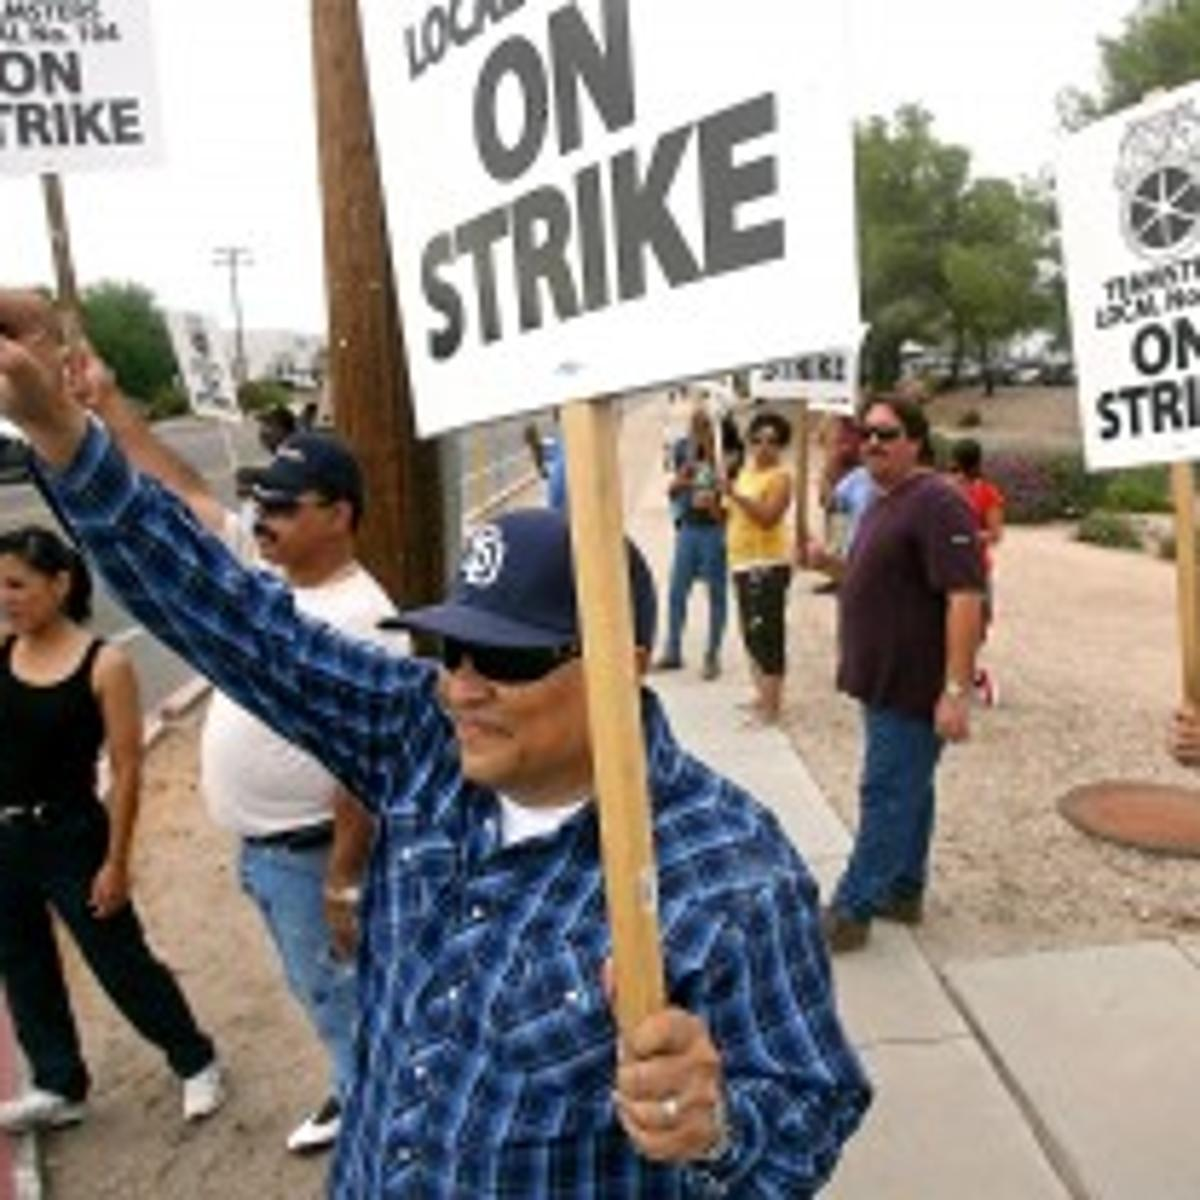 Union pickets shout down opponents of bus strike | Govt-and